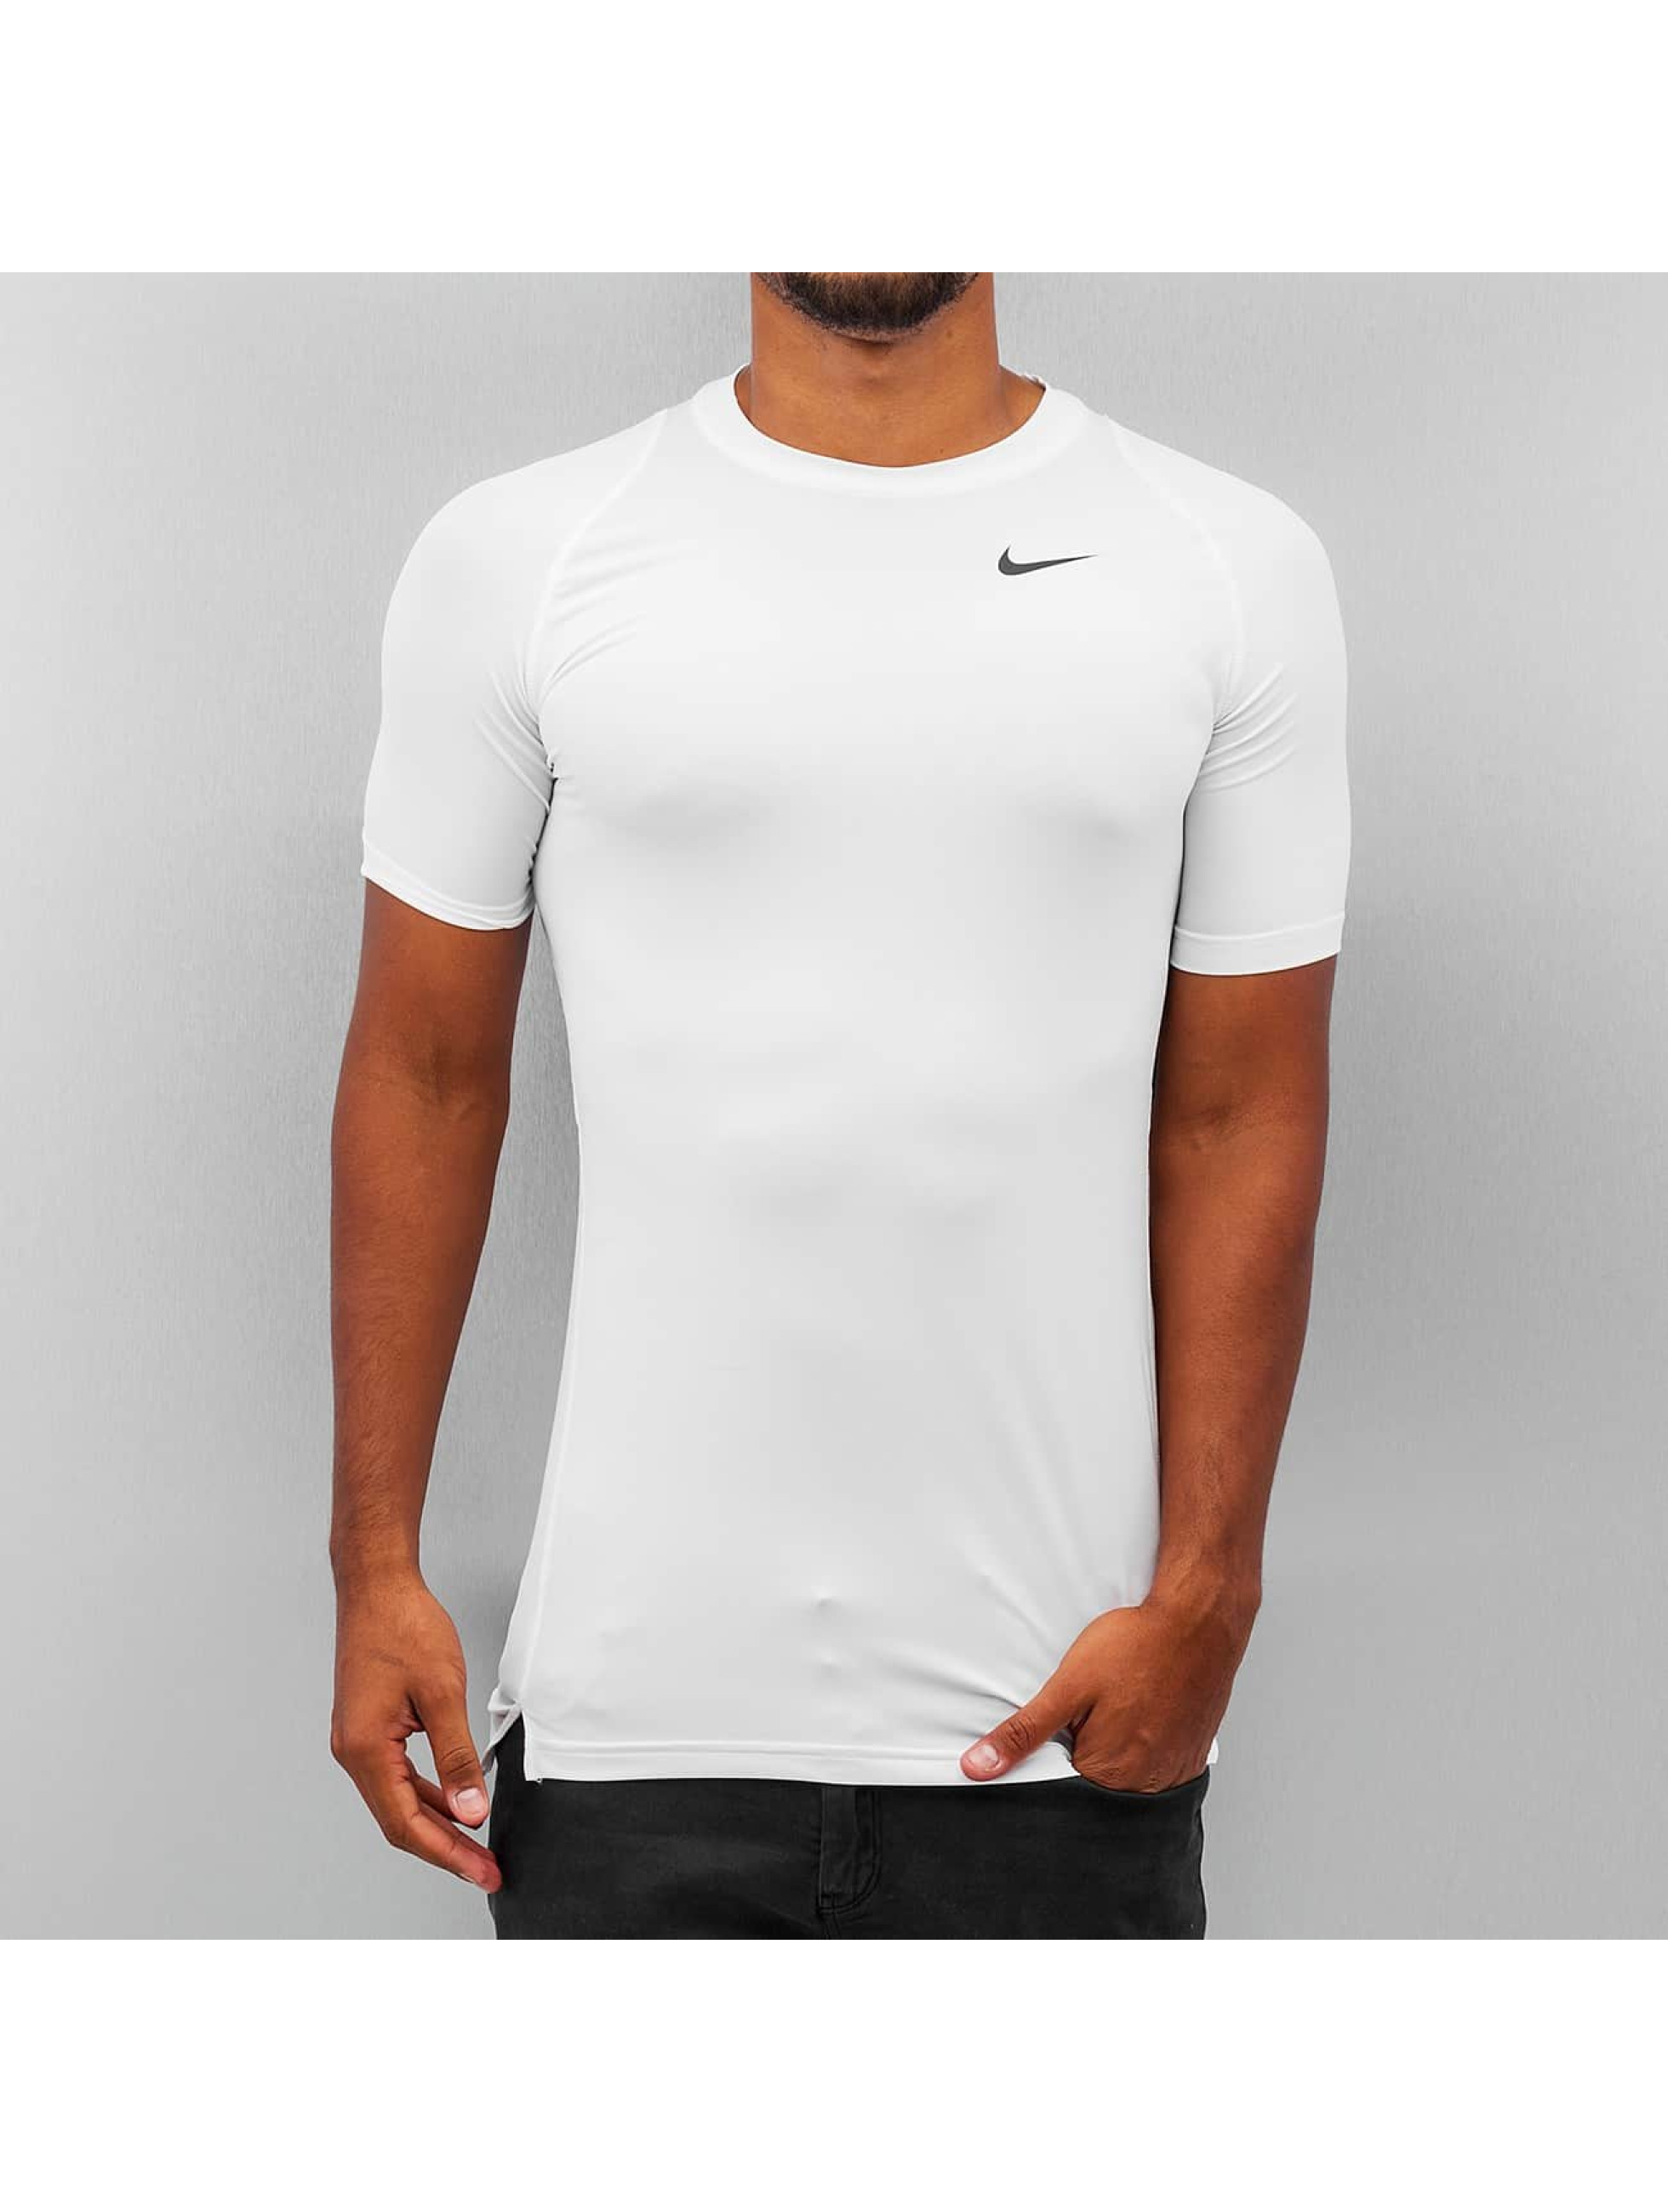 Nike Performance T-Shirt Pro Cool Compression weiß